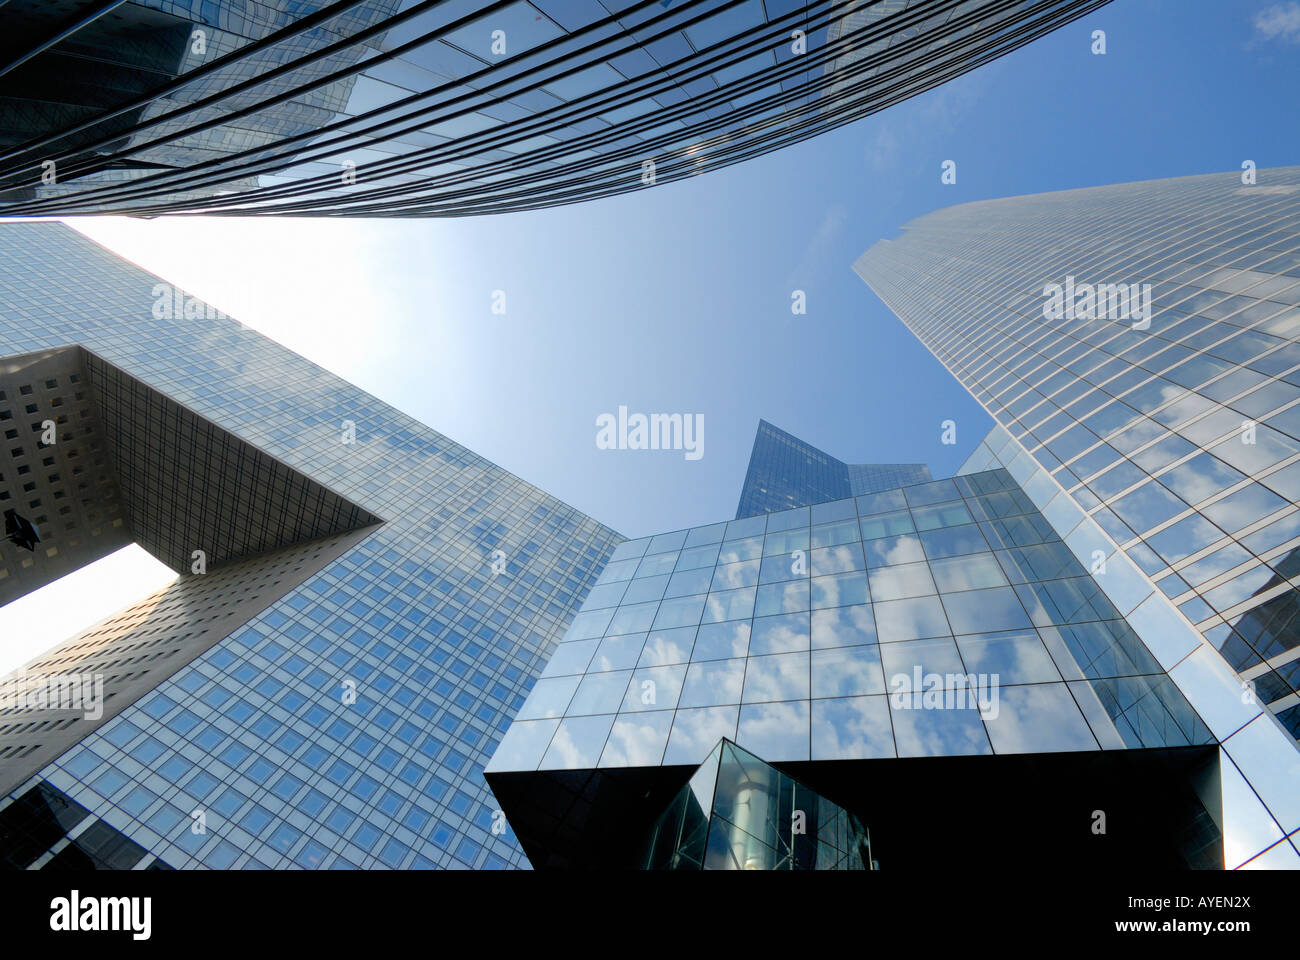 L'architecture moderne et gratte-ciel du quartier financier de la Défense Paris France Photo Stock